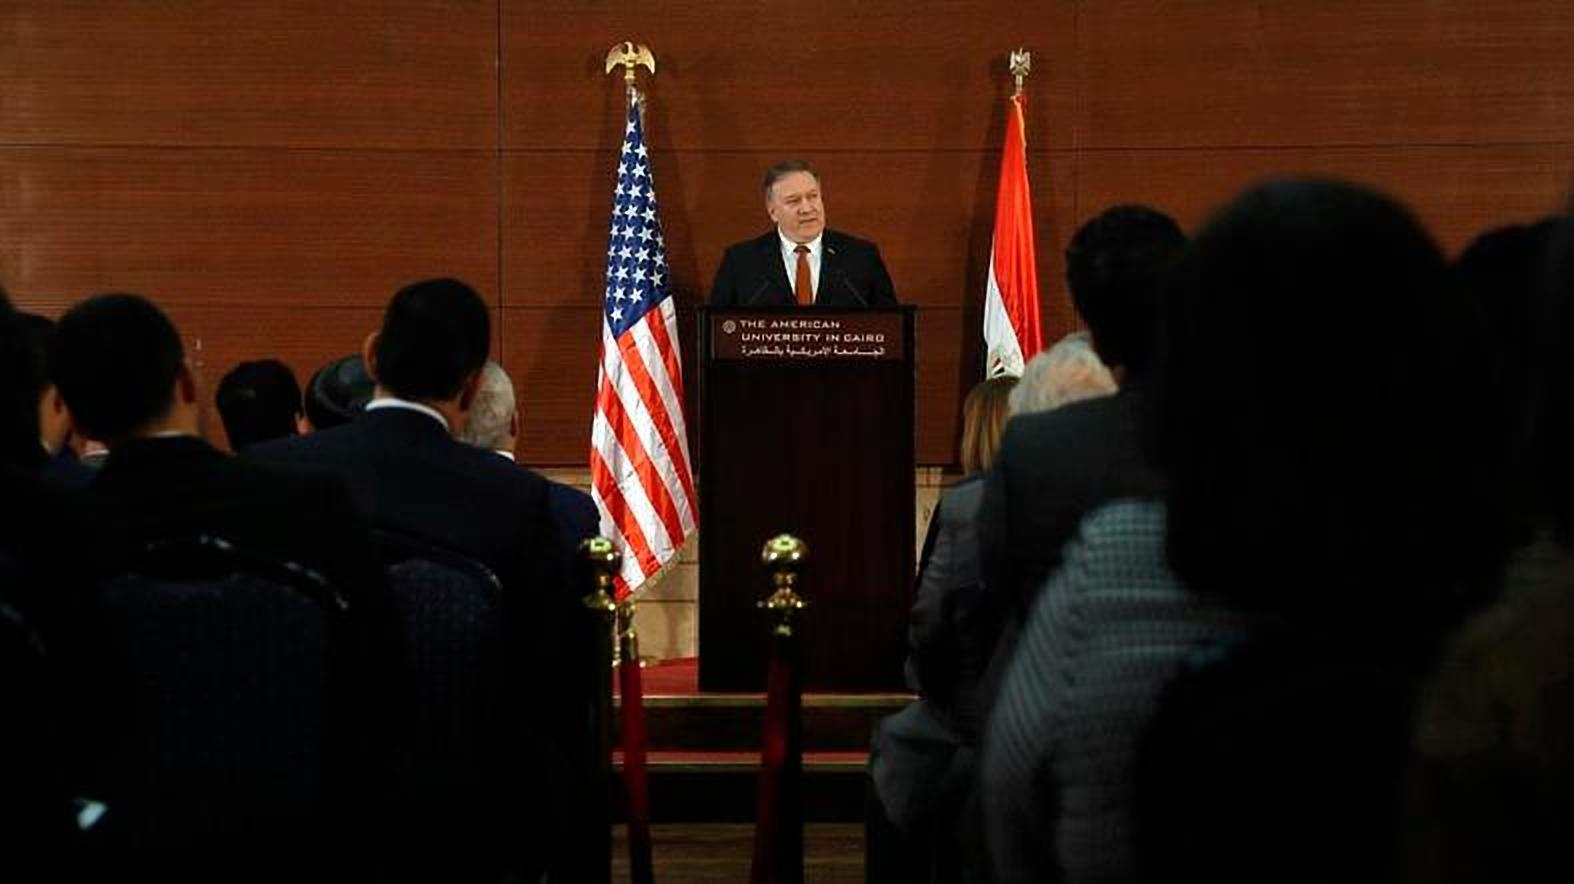 Pompeo cuts short Mideast tour over family funeral